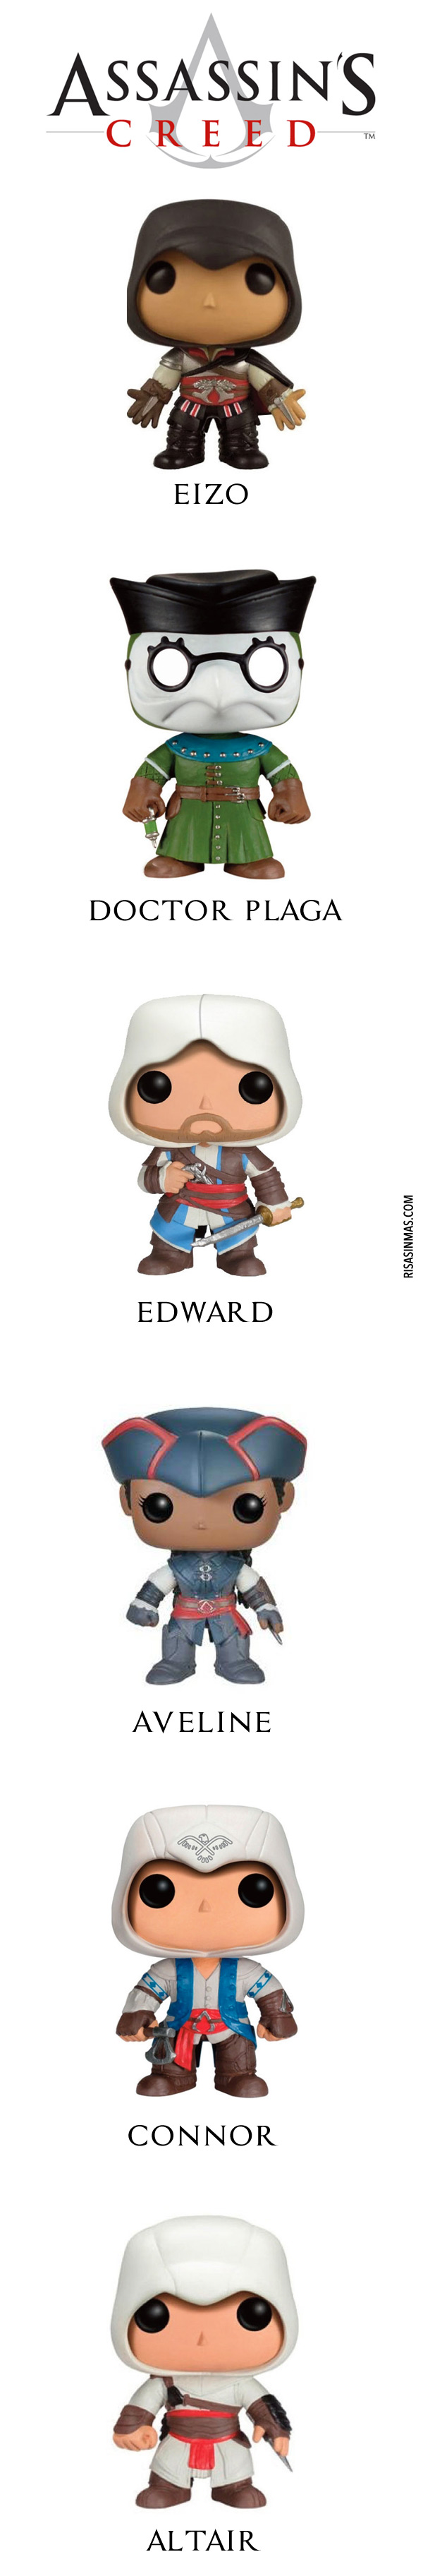 Cabezones de Assassin's Creed